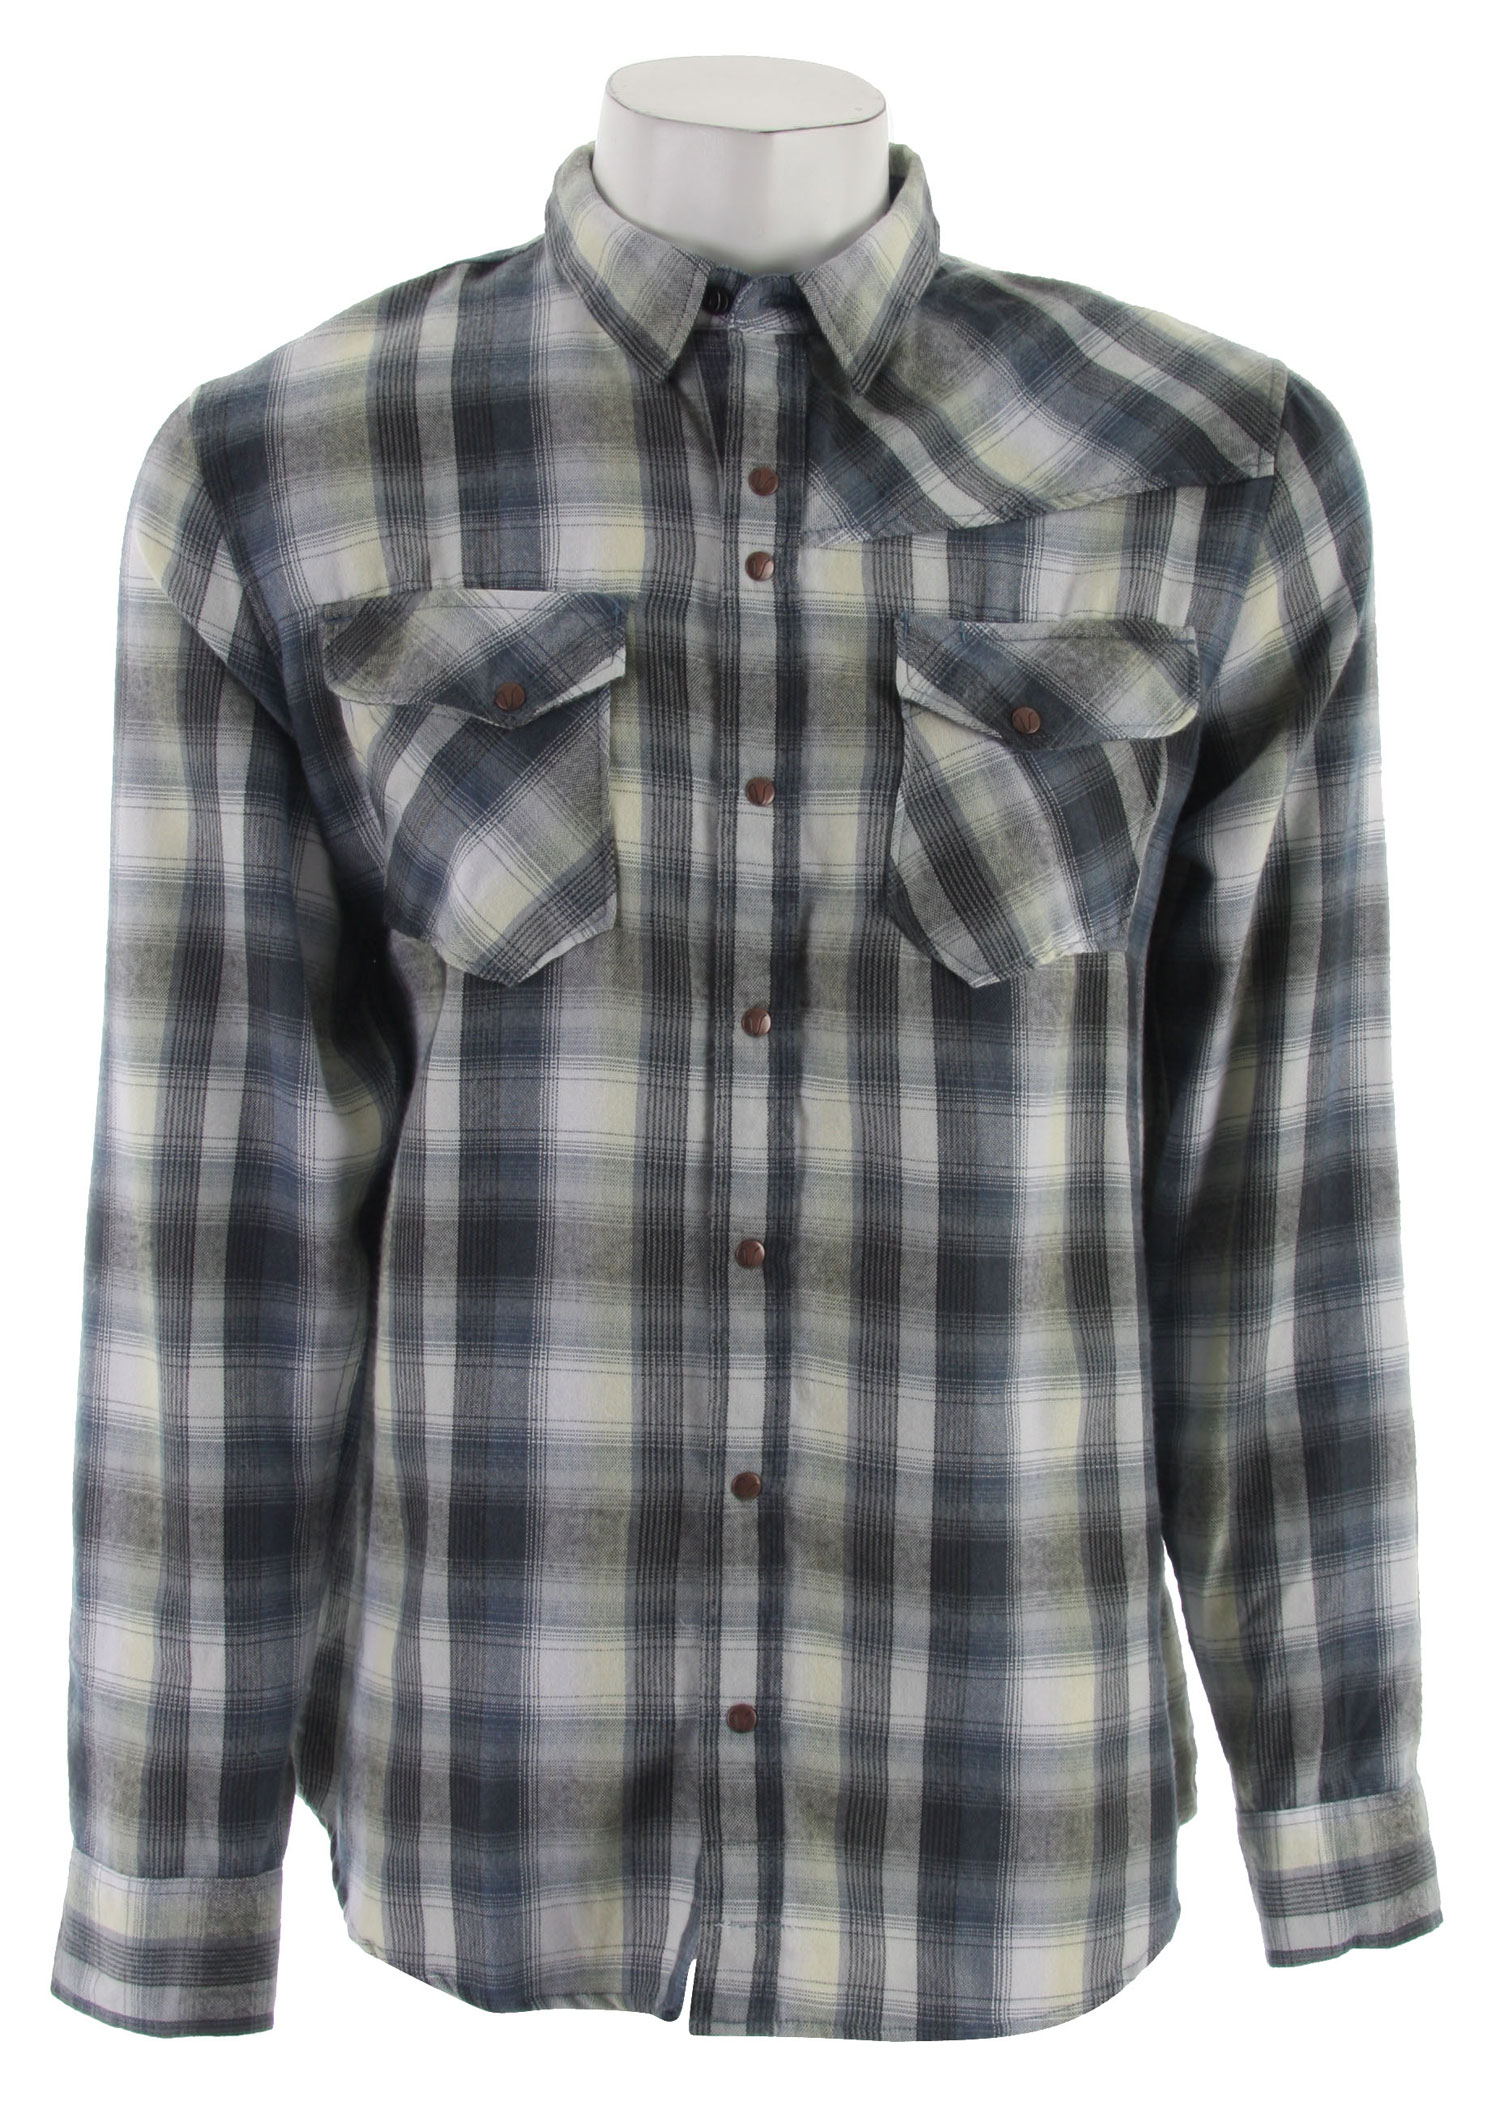 Entertainment Just because you're bent on smashing the status quo doesn't mean you have to part with tried and true traditions like the classic flannel shirt. The Volcom Refract L/S Shirt is a testament to the fact that even extreme sport fans love laid-back style. The long sleeved snap up flannel Refract shirt for guys proves that great fashion doesn't have to try hard. Yoked back and dropped front shoulder give this 65/35 poly/rayon Volcom shirt a classic fit and enviable look while dual snap flap pockets on the chest provide a place to stash the good stuff.Key Features of the Volcom Refract L/S Shirt: Classic fit flannel with double chest pockets Bias cut back yoke and front shoulder drop 65% Polyester/35% Rayon - $37.95